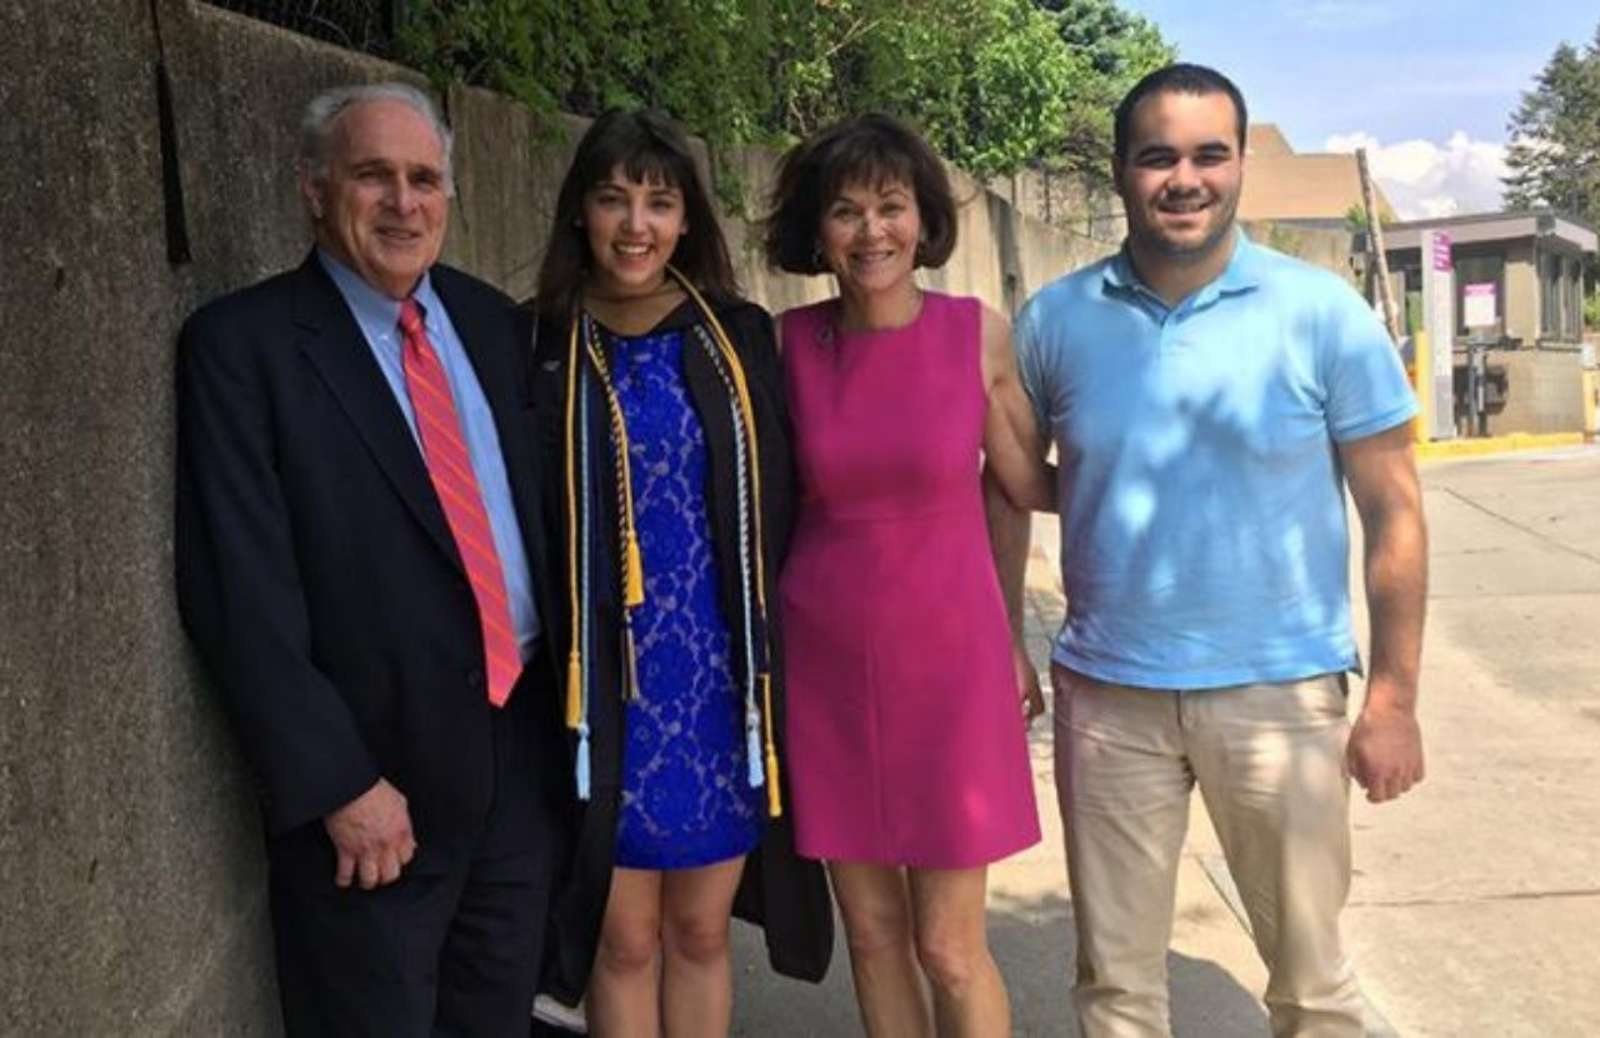 iRelaunc team member Anne Zacharias standing with her daughter, son, and husband